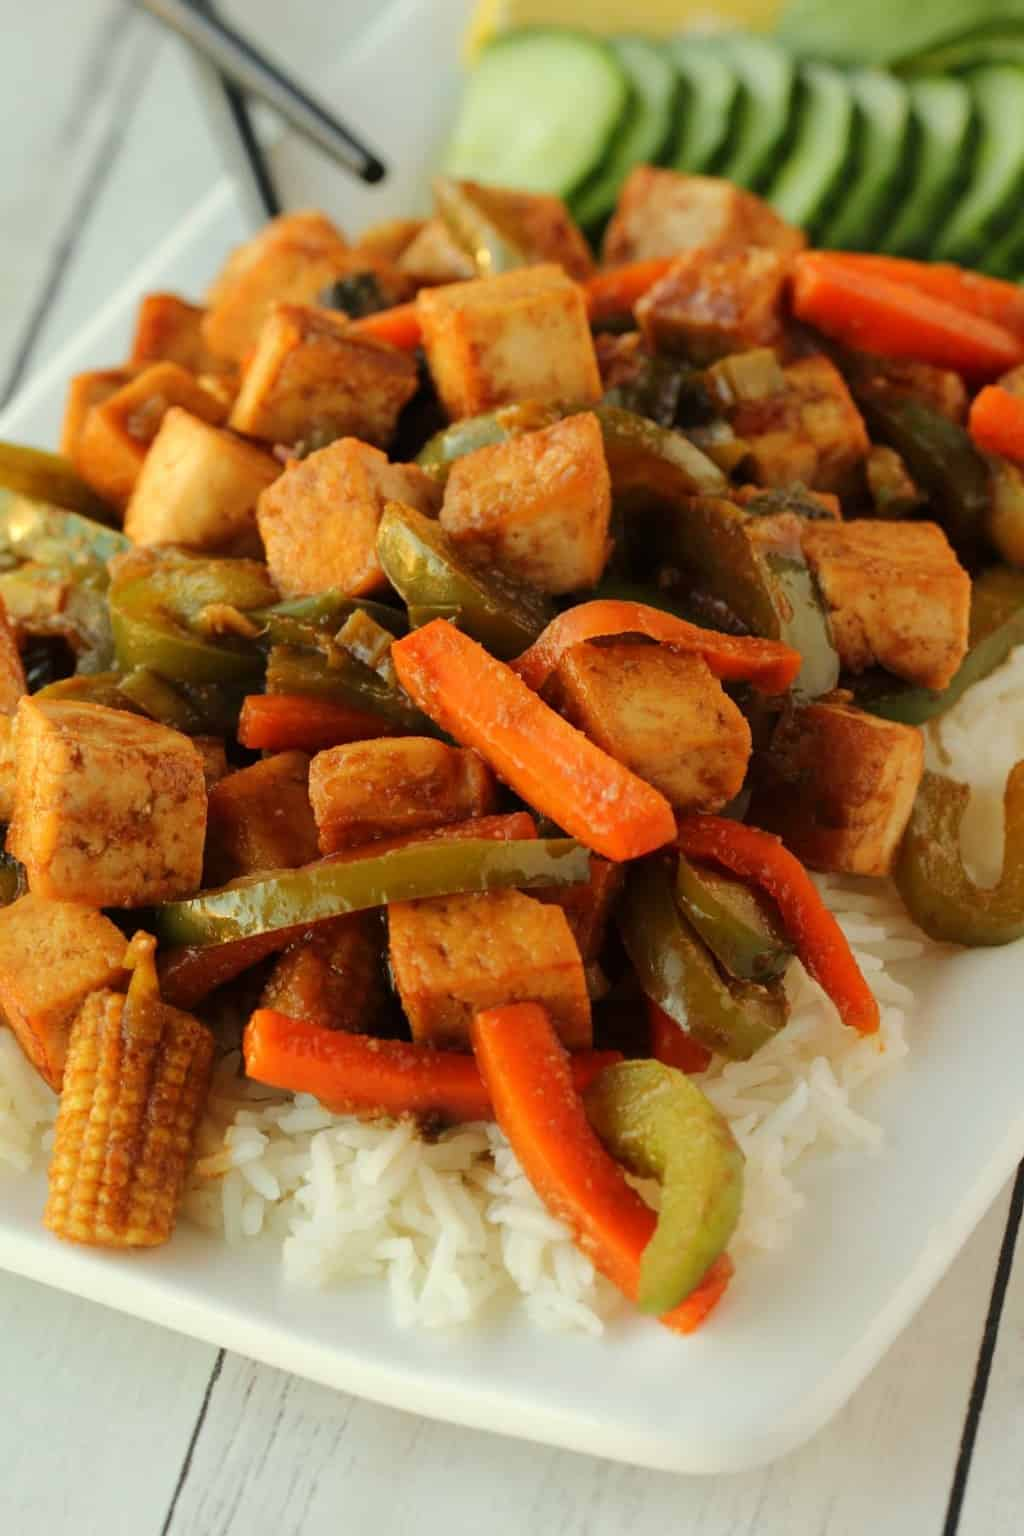 Vegan Tofu Stir Fry served over rice on a white plate with chopsticks.